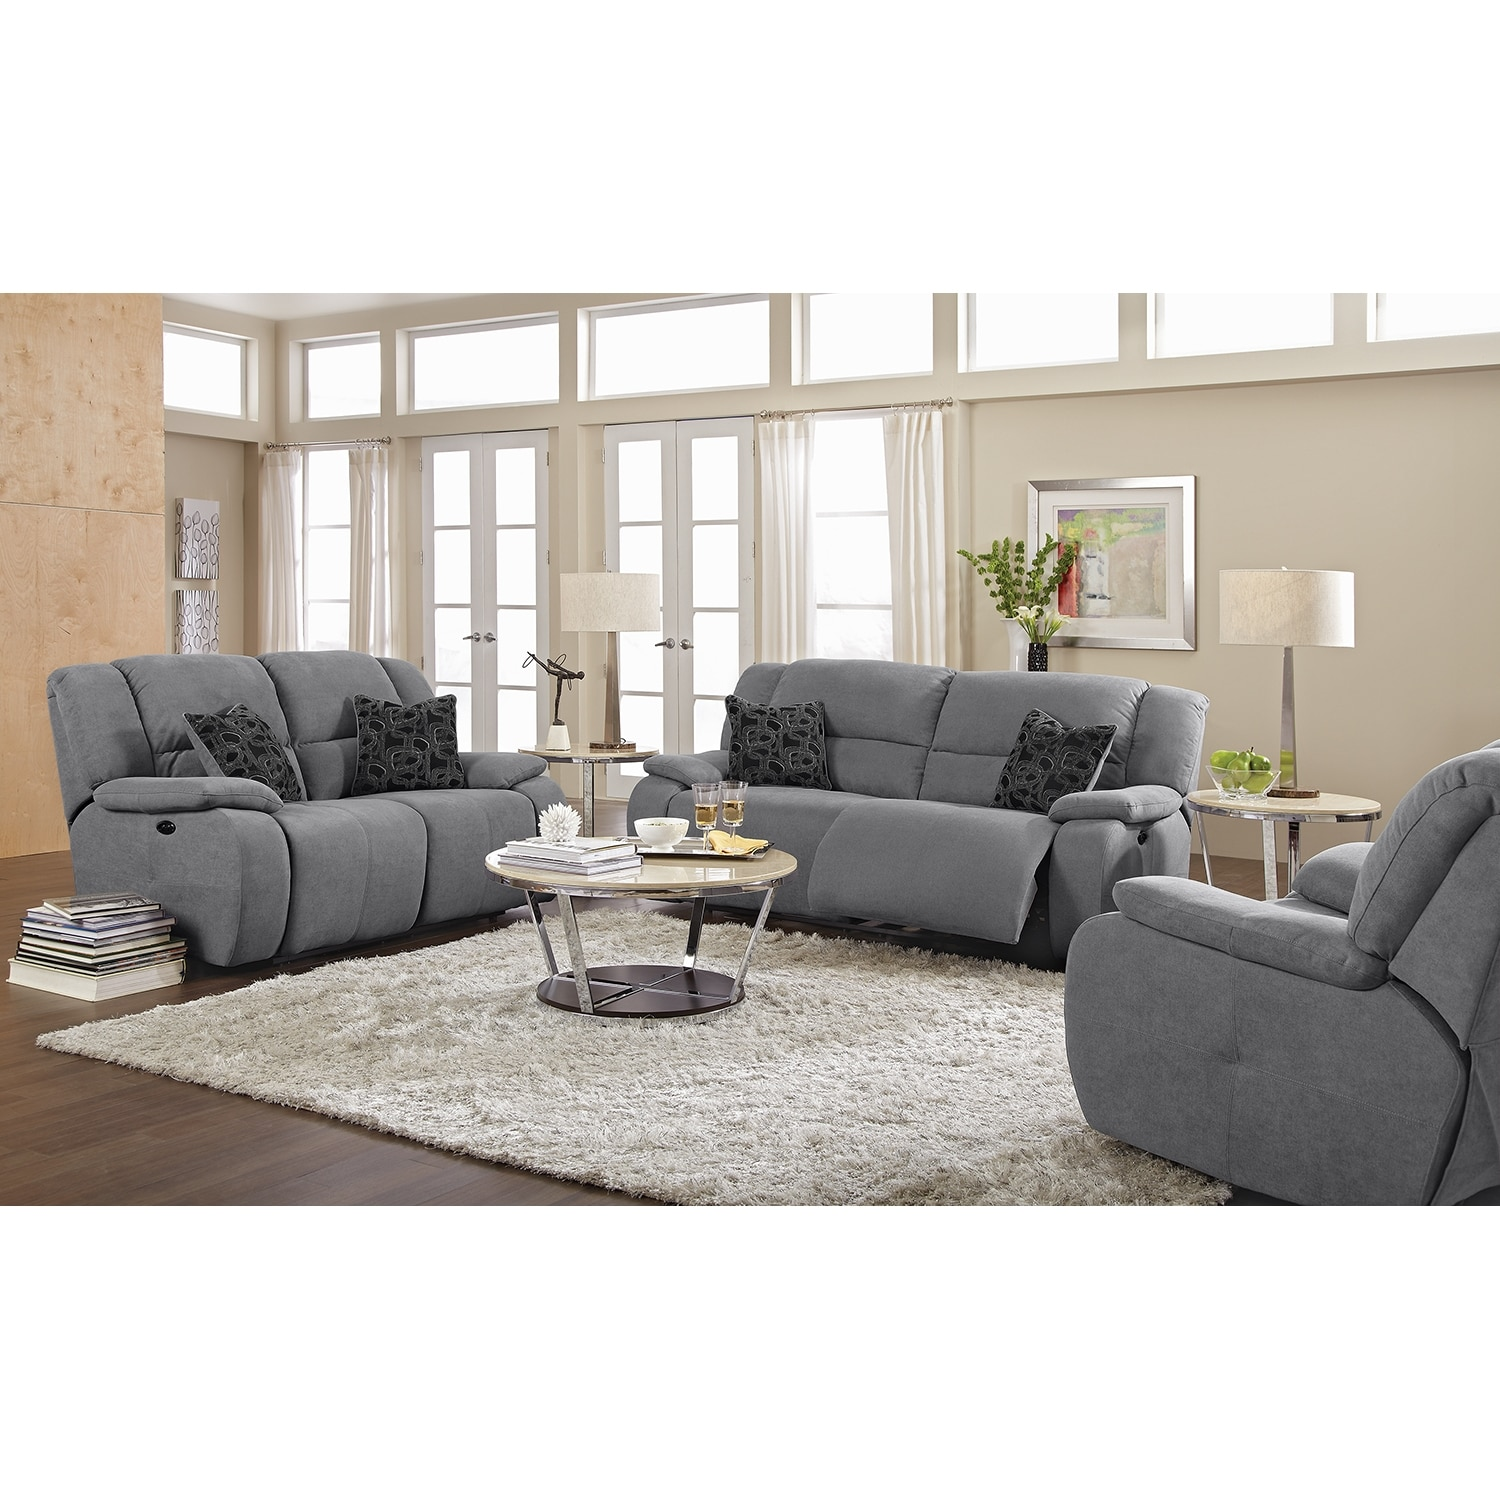 Fortuna gray power reclining sofa for Small living room furniture for sale